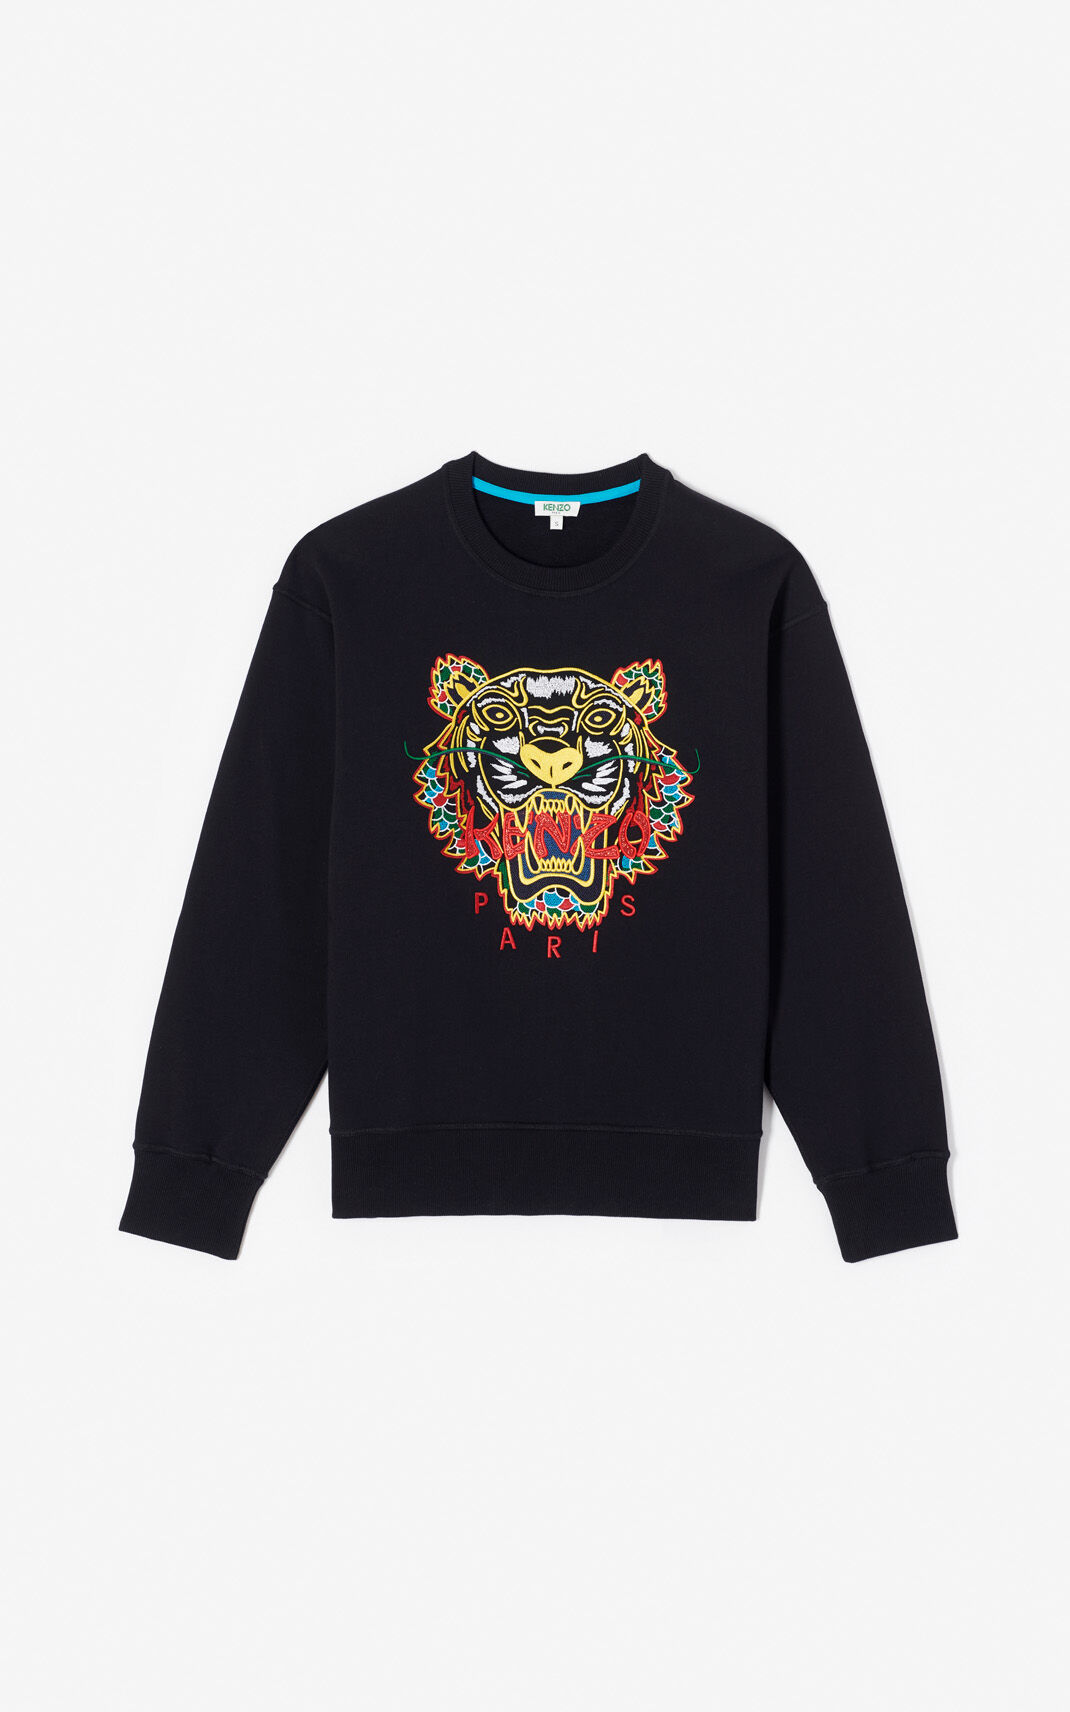 187ed32d Jumpers, Cardigans & Sweatshirts Kenzo Womens Grey Dragon ...